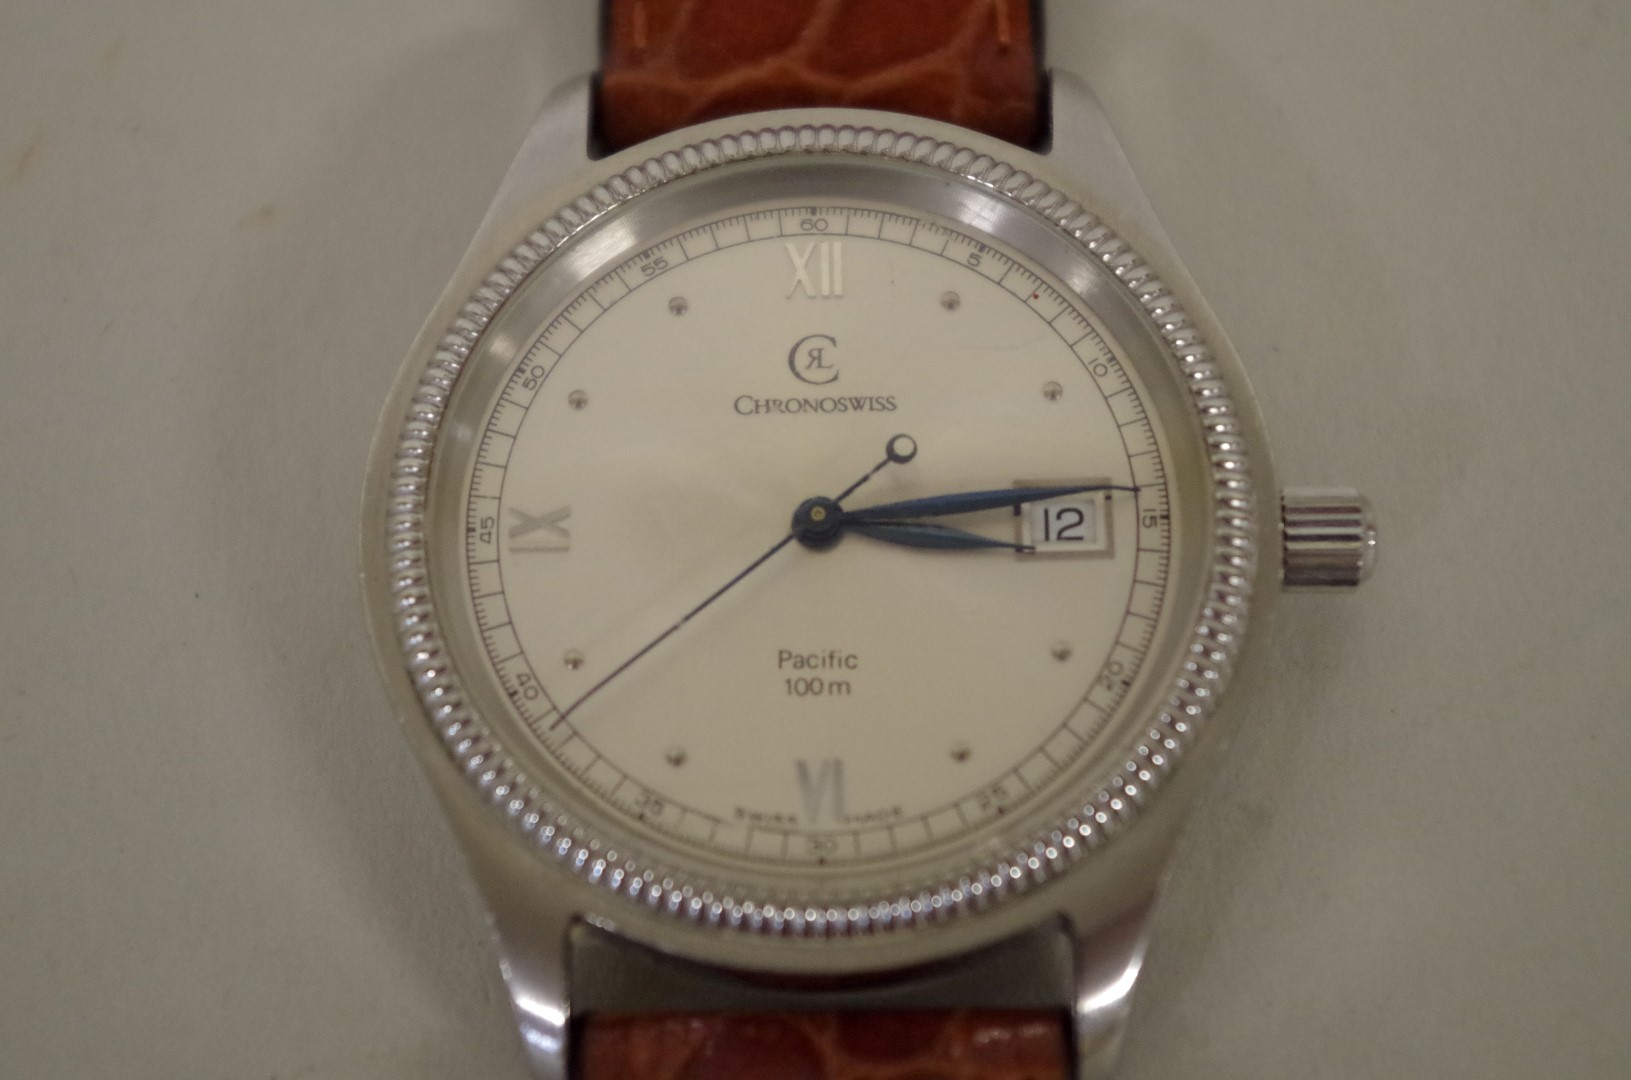 Lot 146 - A Chronoswiss Pacific automatic wristwatch, ref. CH2214, movement ETA 2892-2, on replacement leather